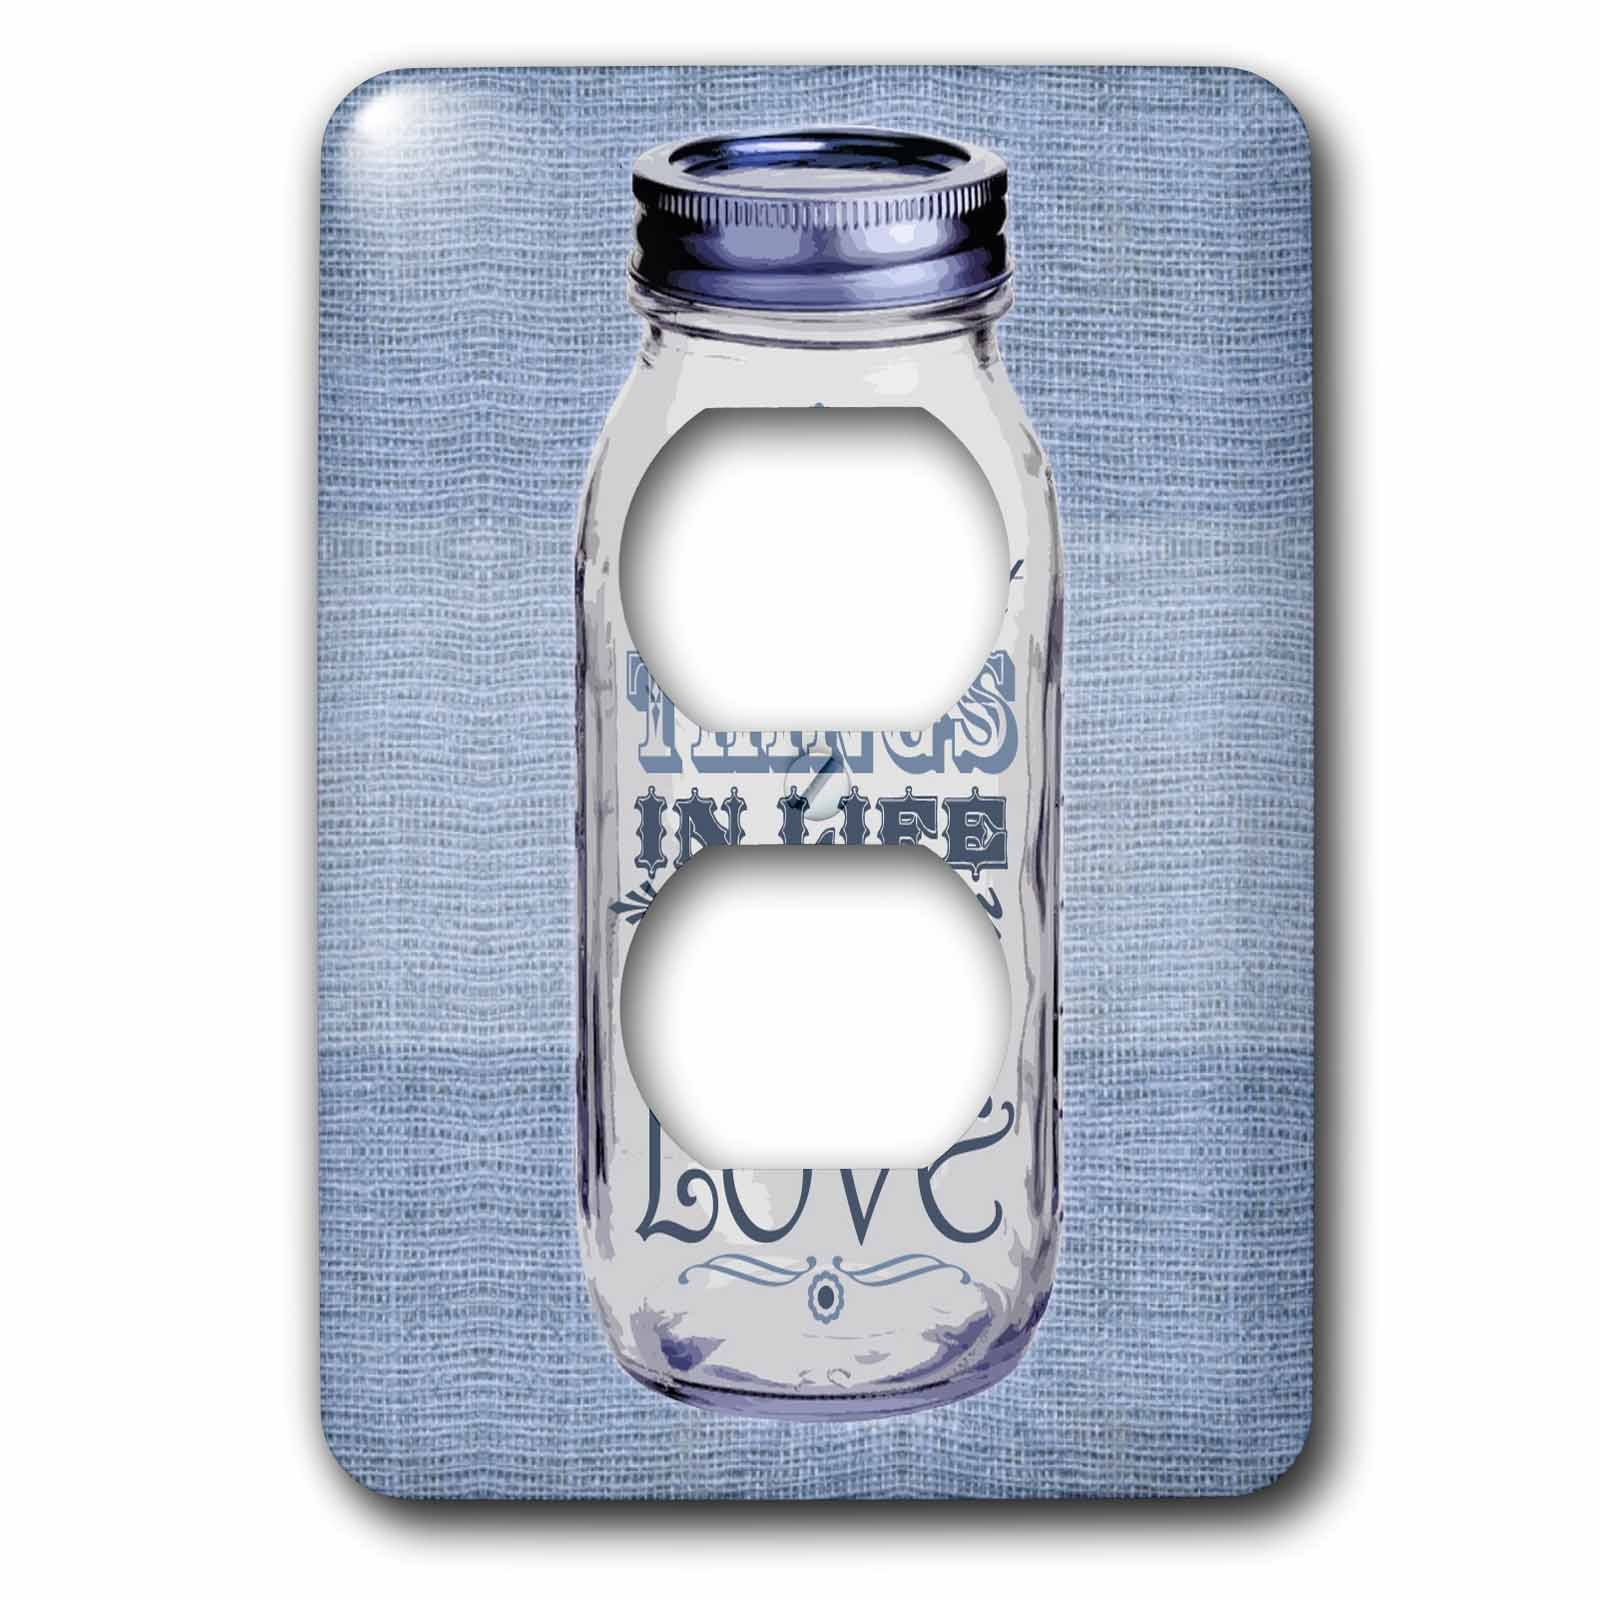 3dRose lsp_128509_6 Mason Jar on Burlap Print Blue The Best Things in Life Are Made with Love Gifts for The Cook 2 Plug Outlet Cover